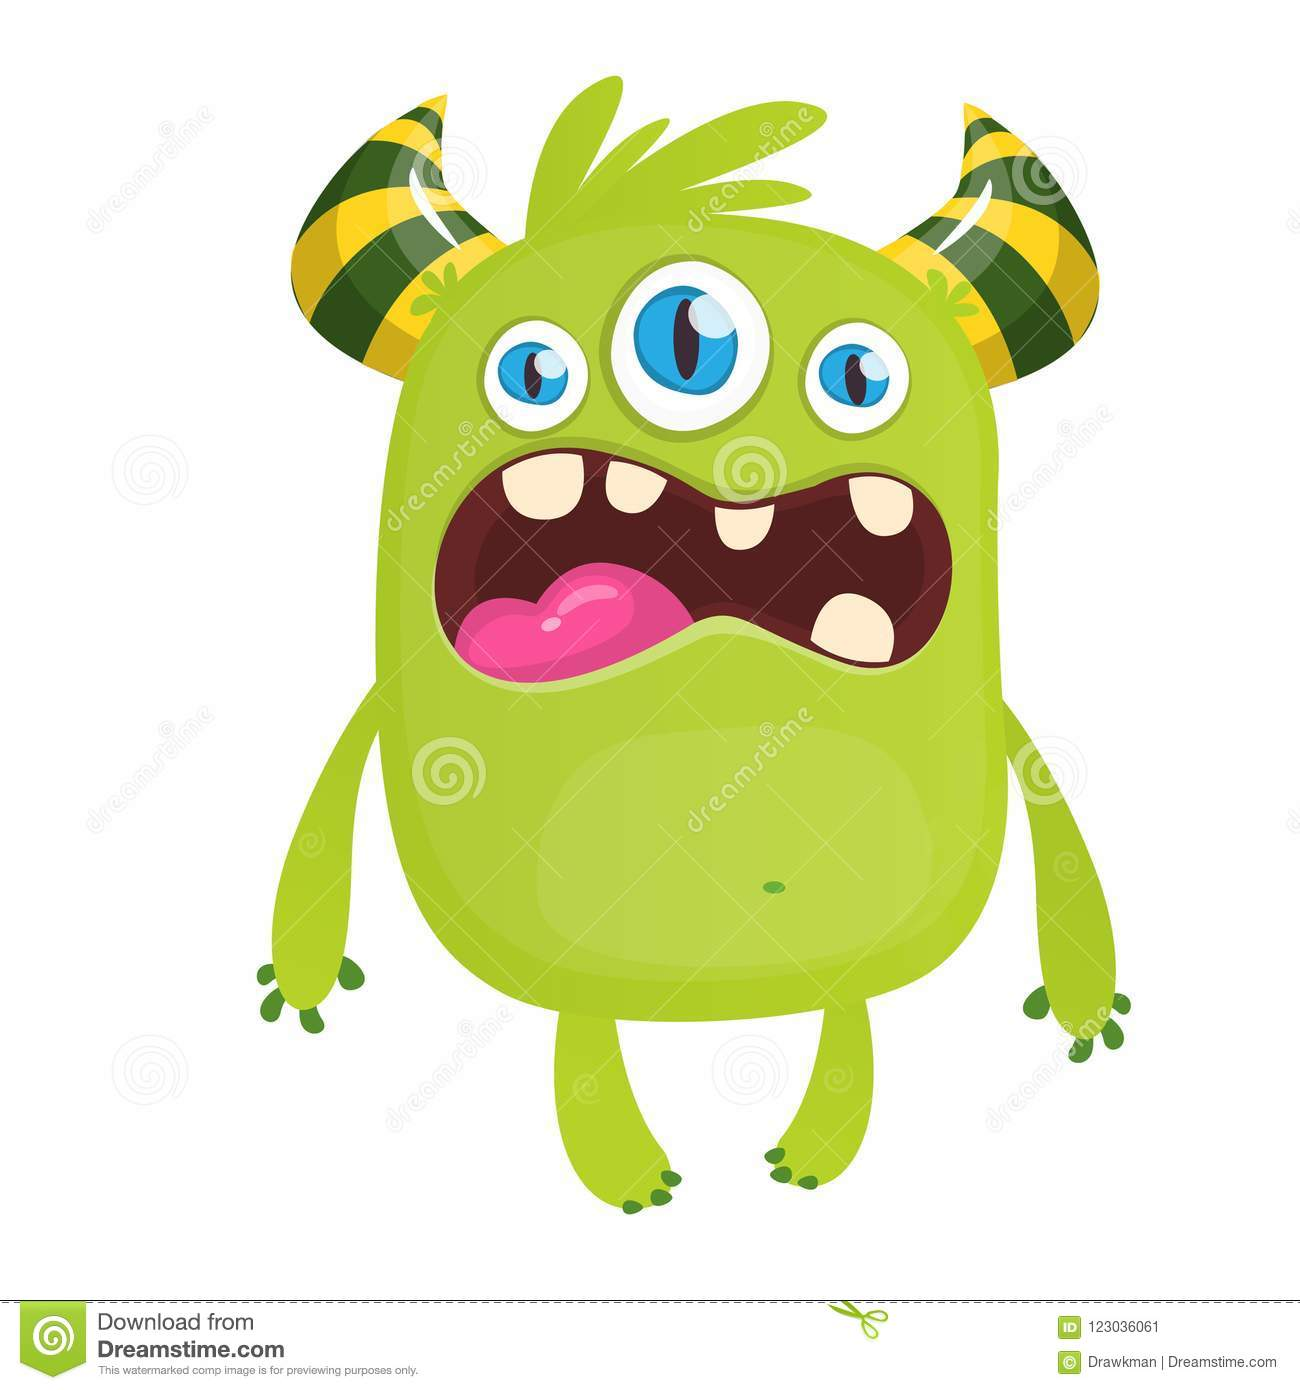 Angry Green Cartoon Monster With Horns An Three Eyes Big Collection Of Cute Monsters Halloween Character Vector Illustrations Stock Vector Illustration Of Face Evil 123036061